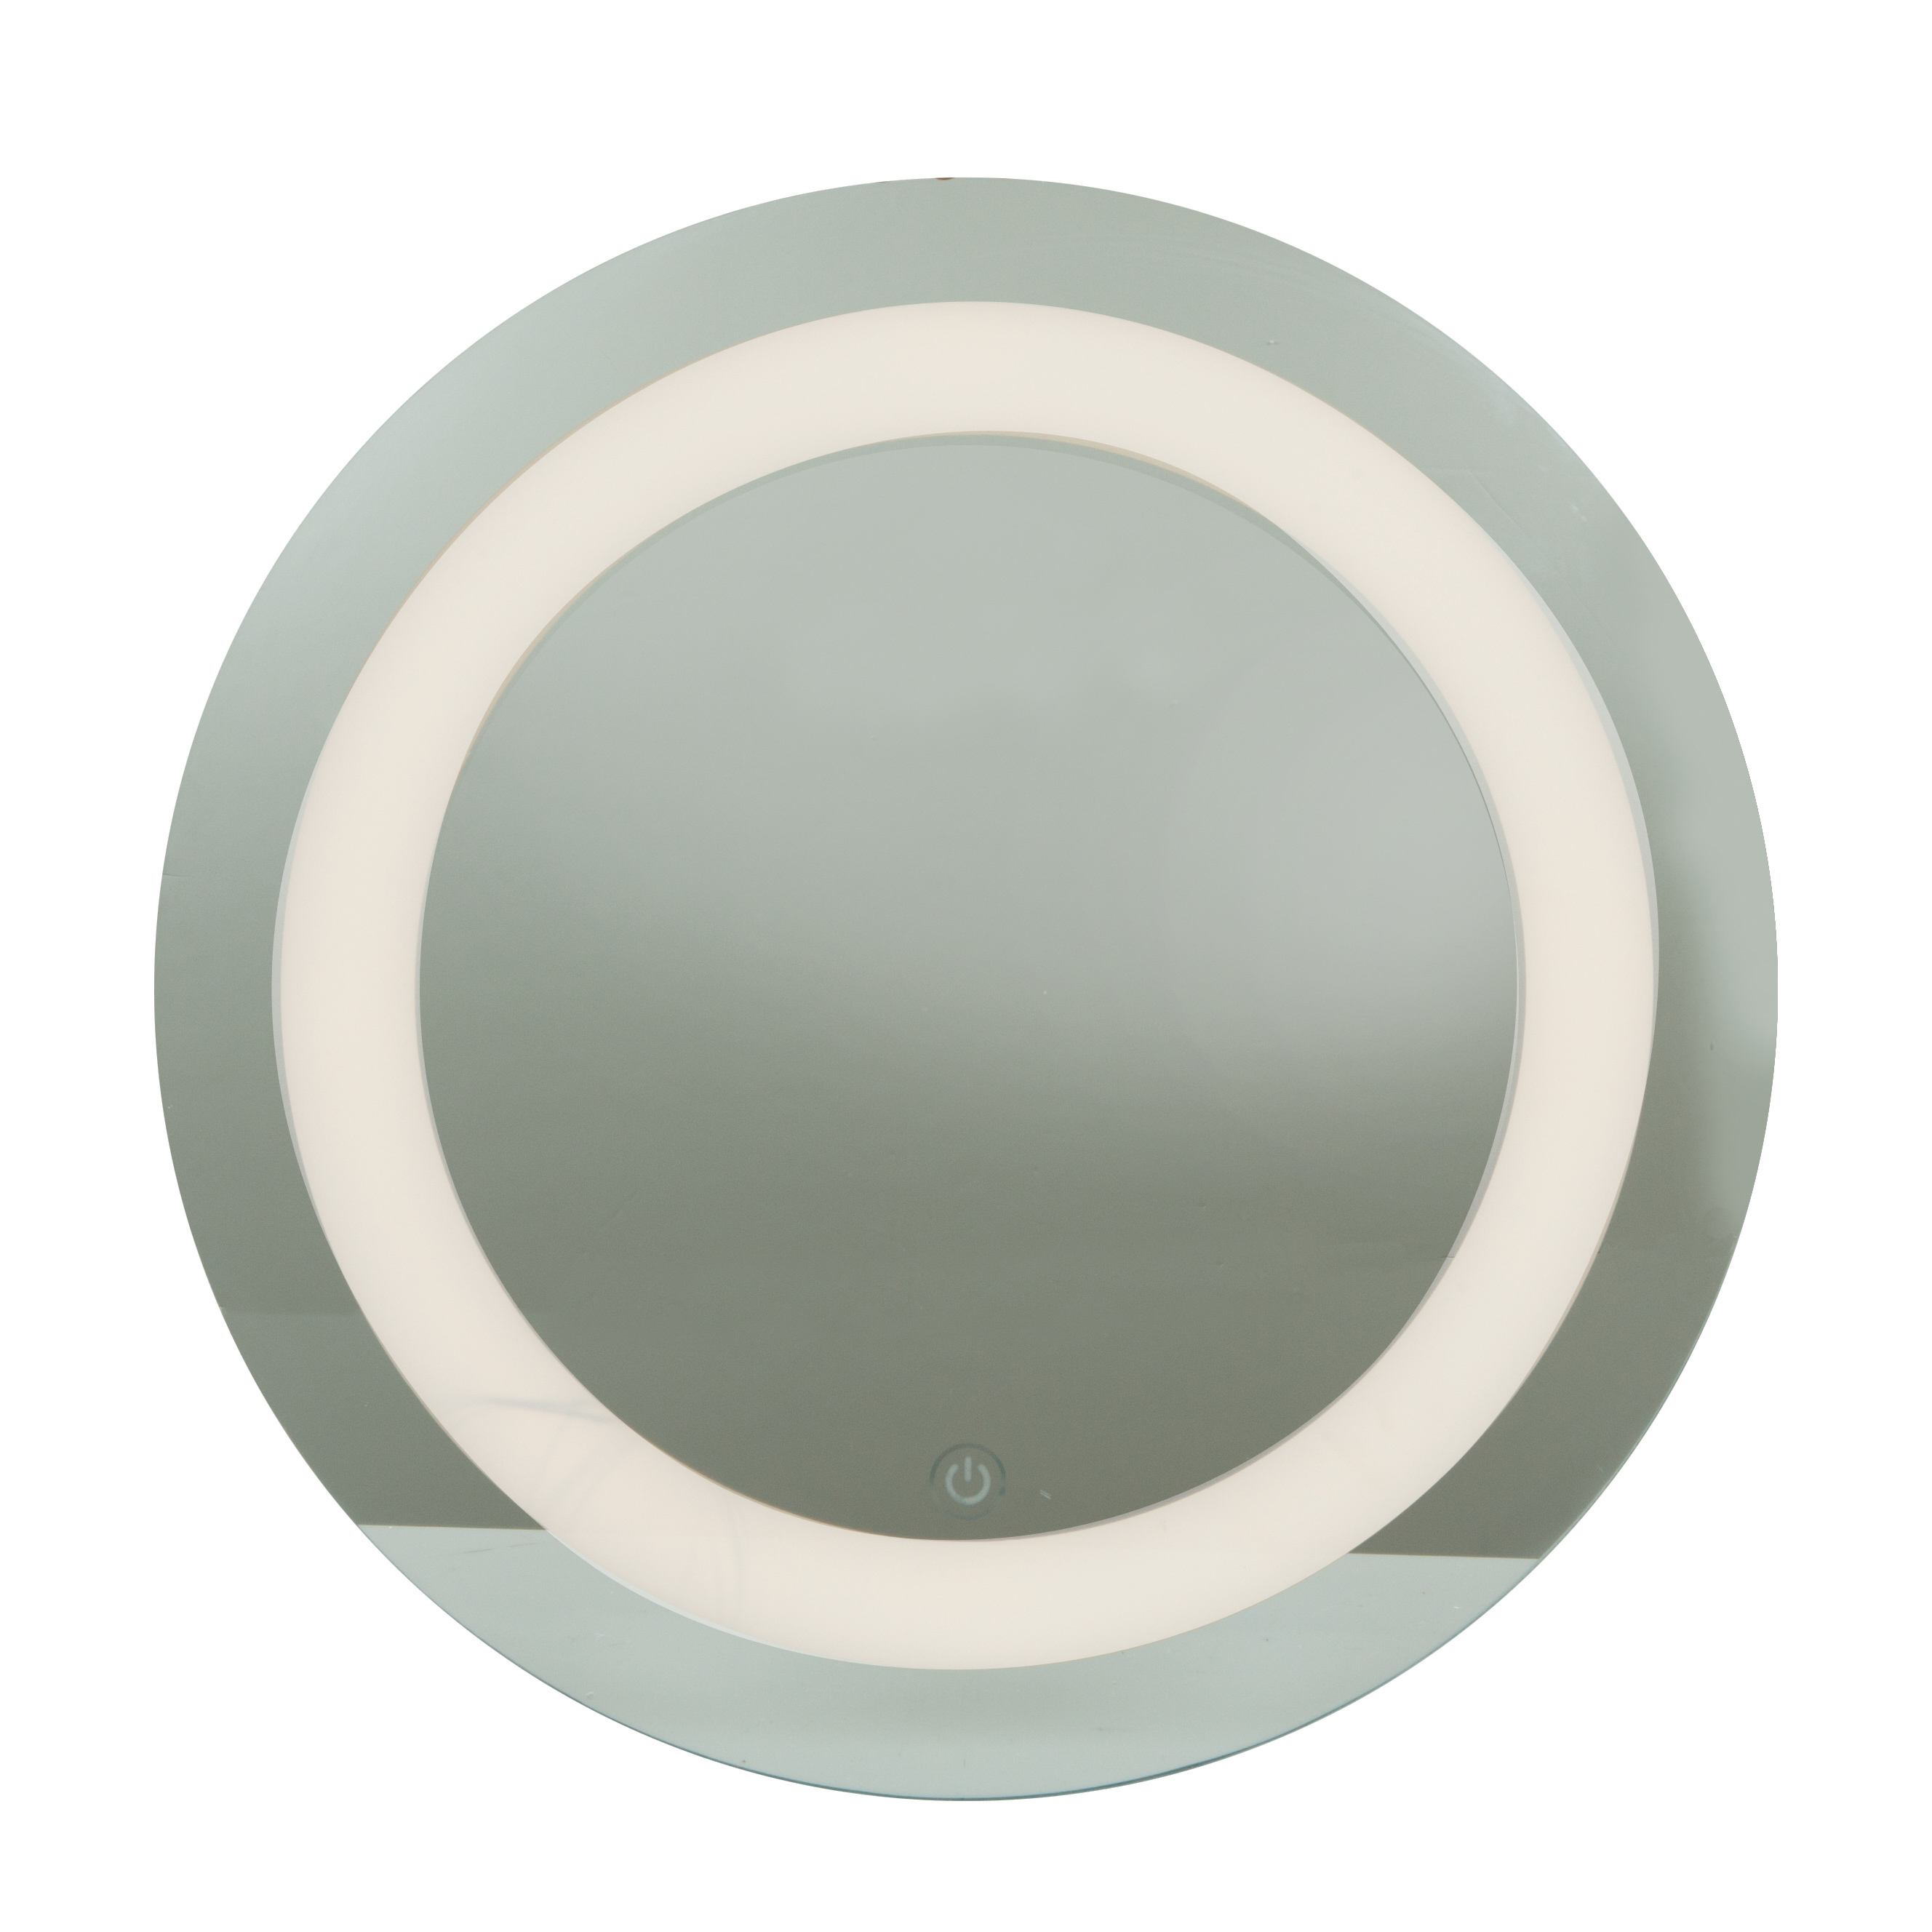 Spa Round Dimmable LED Mirror by Access | 70085LEDD-MIR